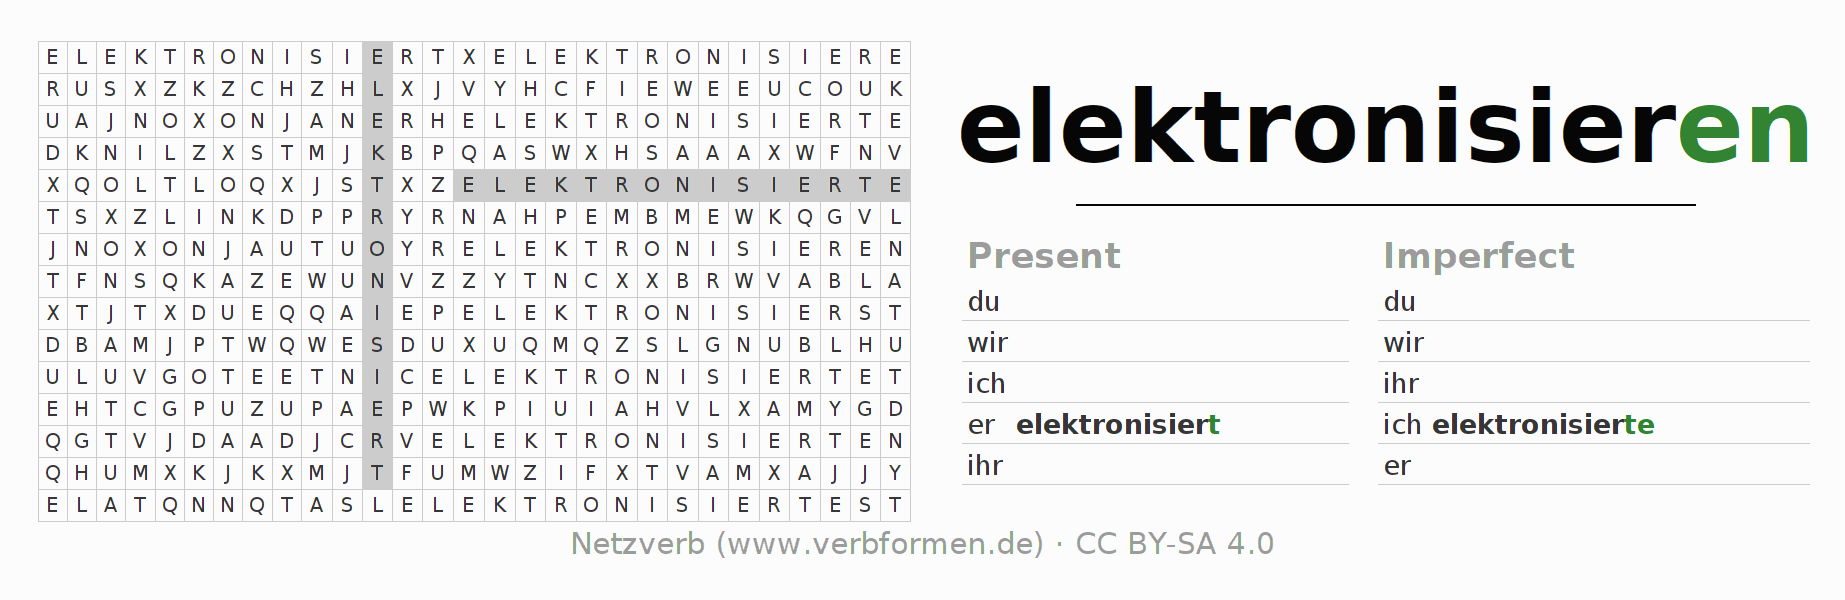 Word search puzzle for the conjugation of the verb elektronisieren